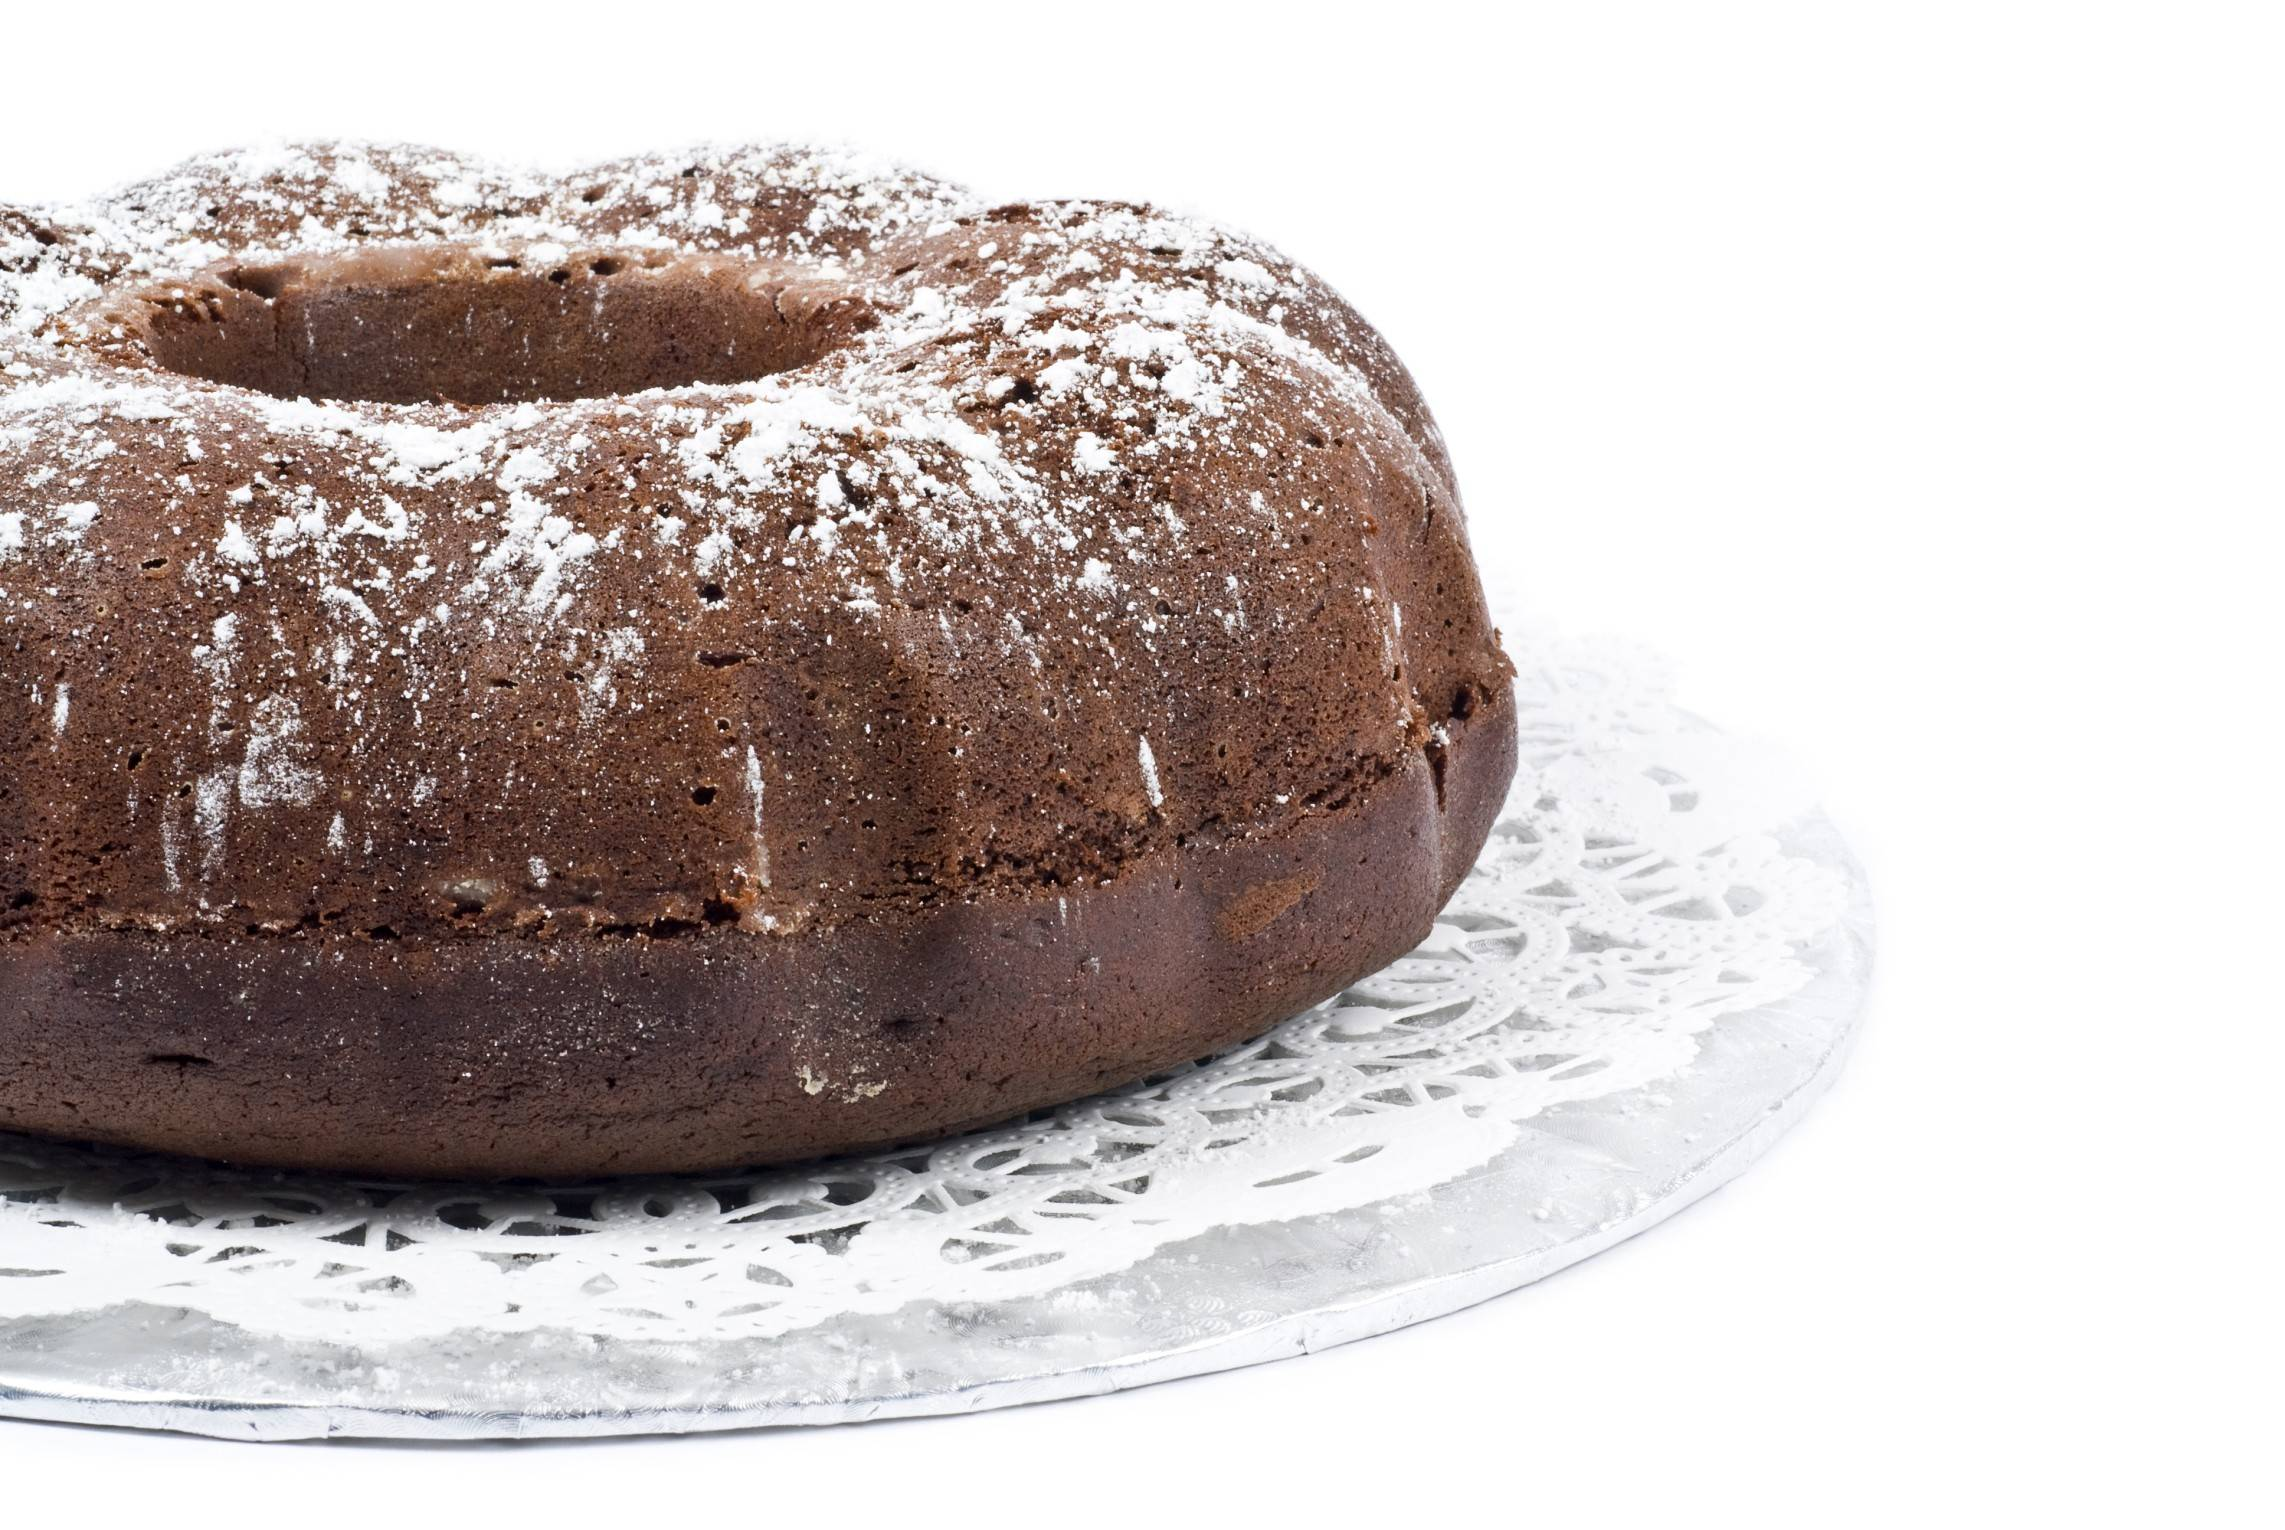 Coconut oil and applesauce improve the nutrition profile of Almond Joy Bundt Cake.